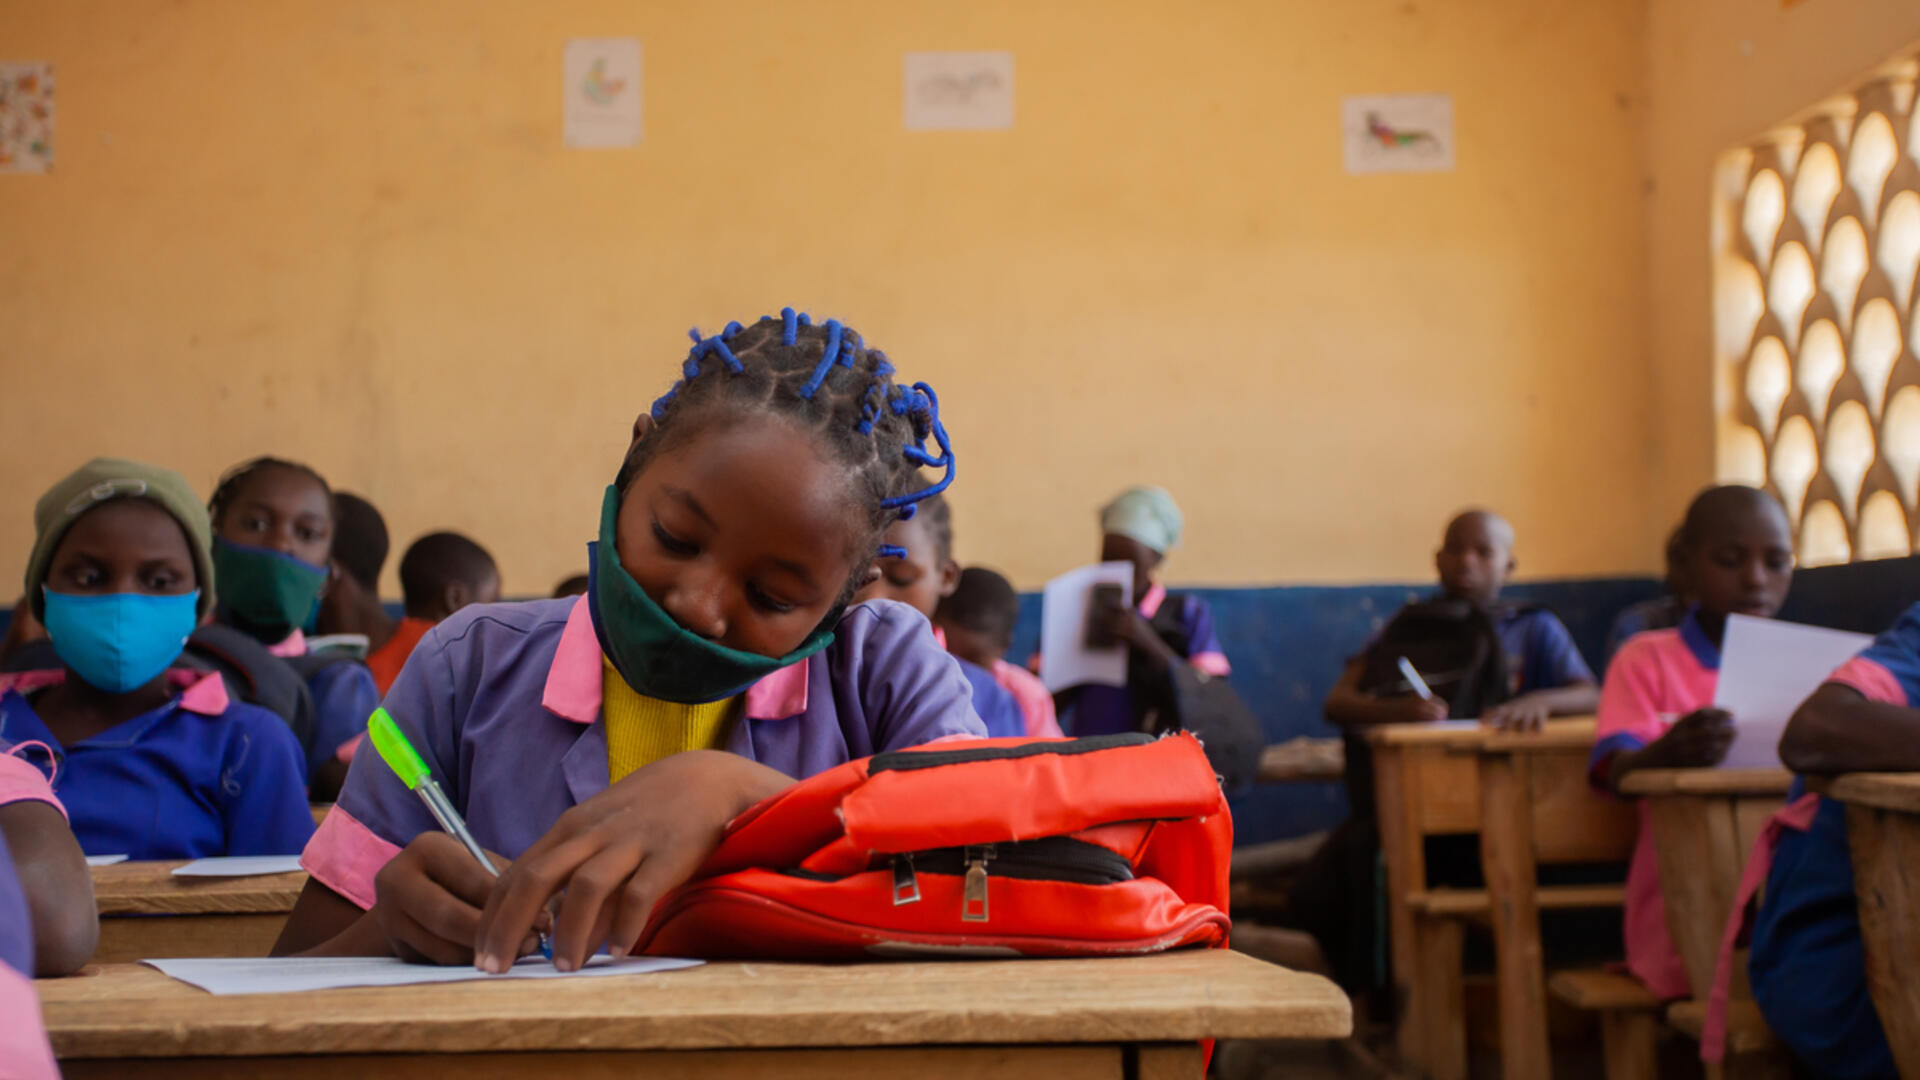 Eleven-year-old Kauvaumah, wearing her school uniform, writes at a wooden desk in her classroom in Cameroon.